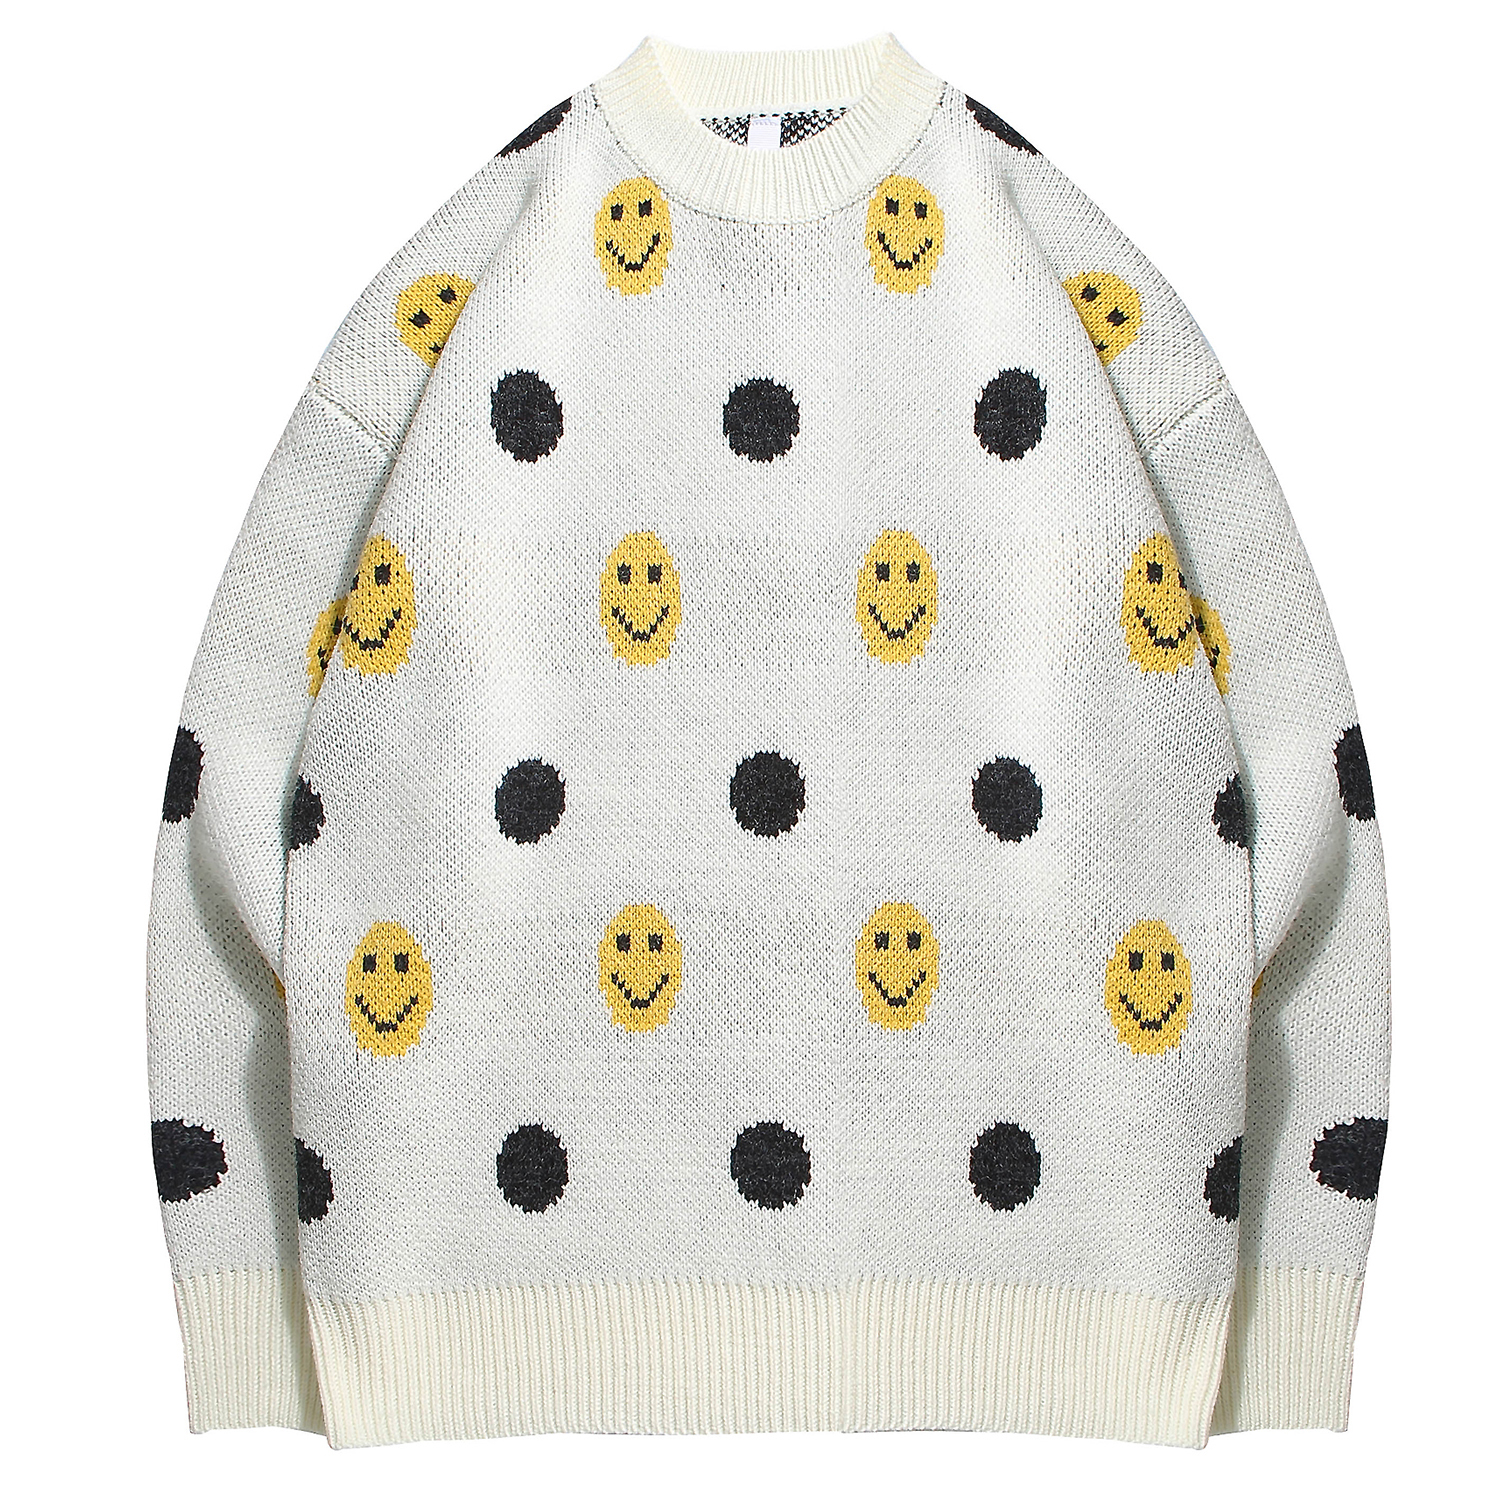 Men's Sweater Smiley Pattern Fine Knitted Jumpers Pullover Crewneck Casual Tops Retro Fashion For Young Boys Leisure Outdoor